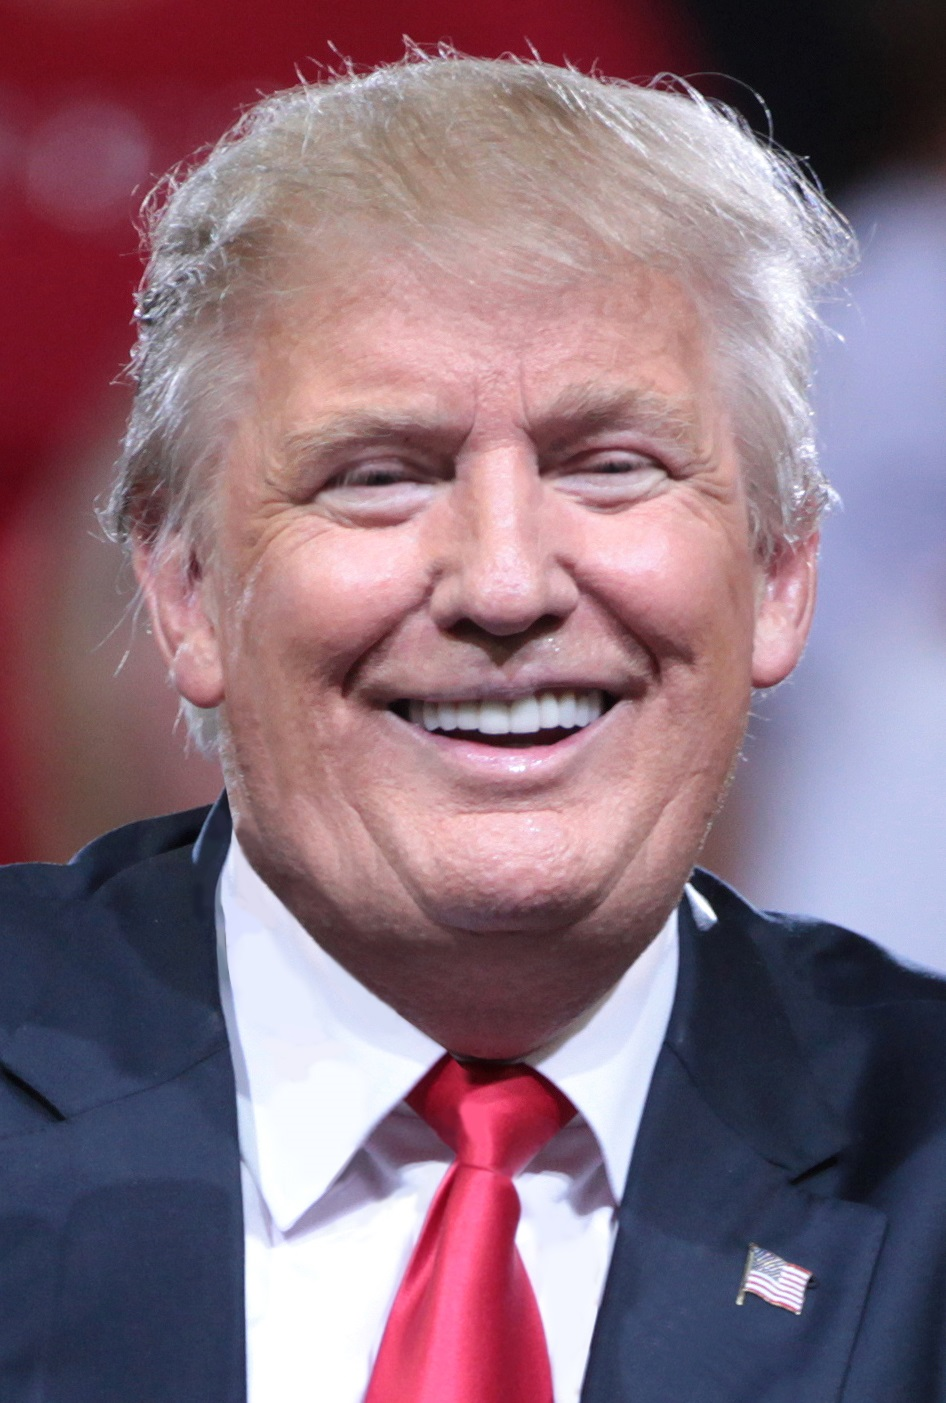 Image of Donald Trump smiling with clearly visible dental crowns